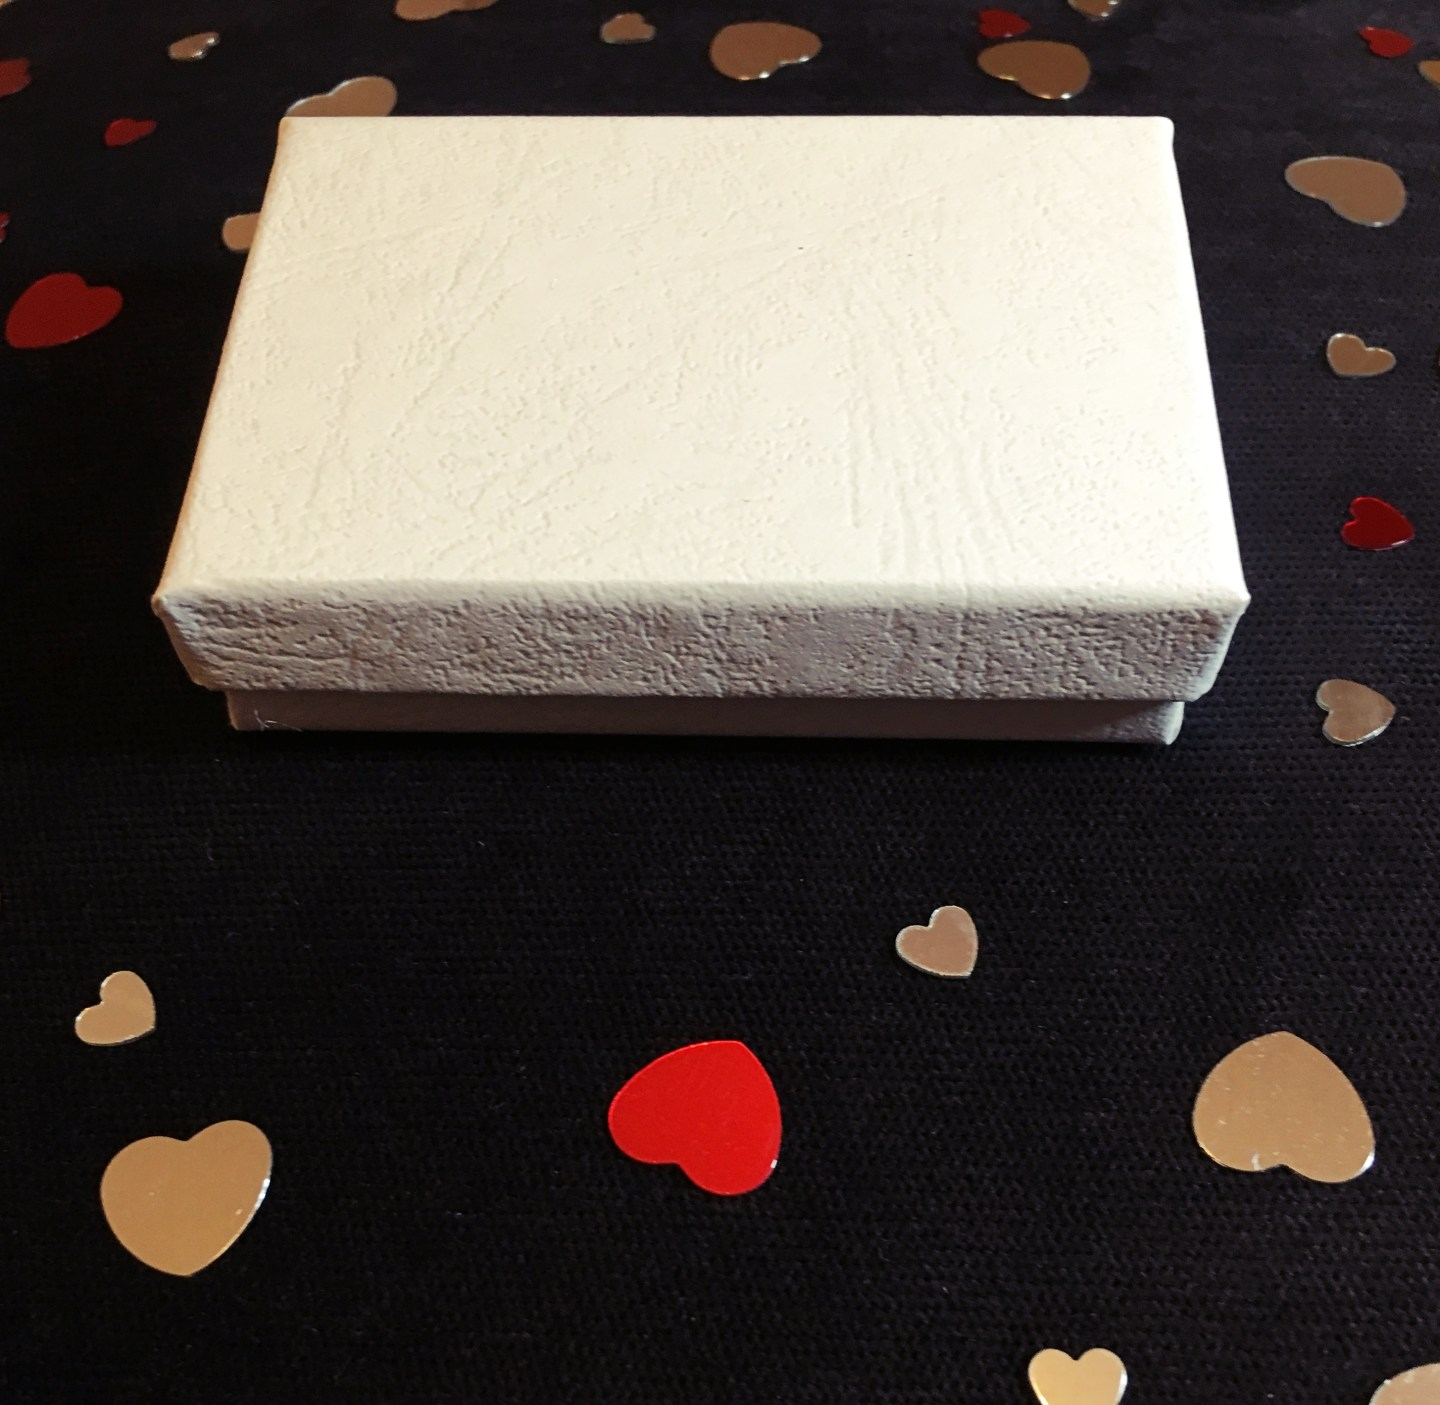 A small white box that the earrings came in, sat on a black surface with red and silver hearts around for decoration.